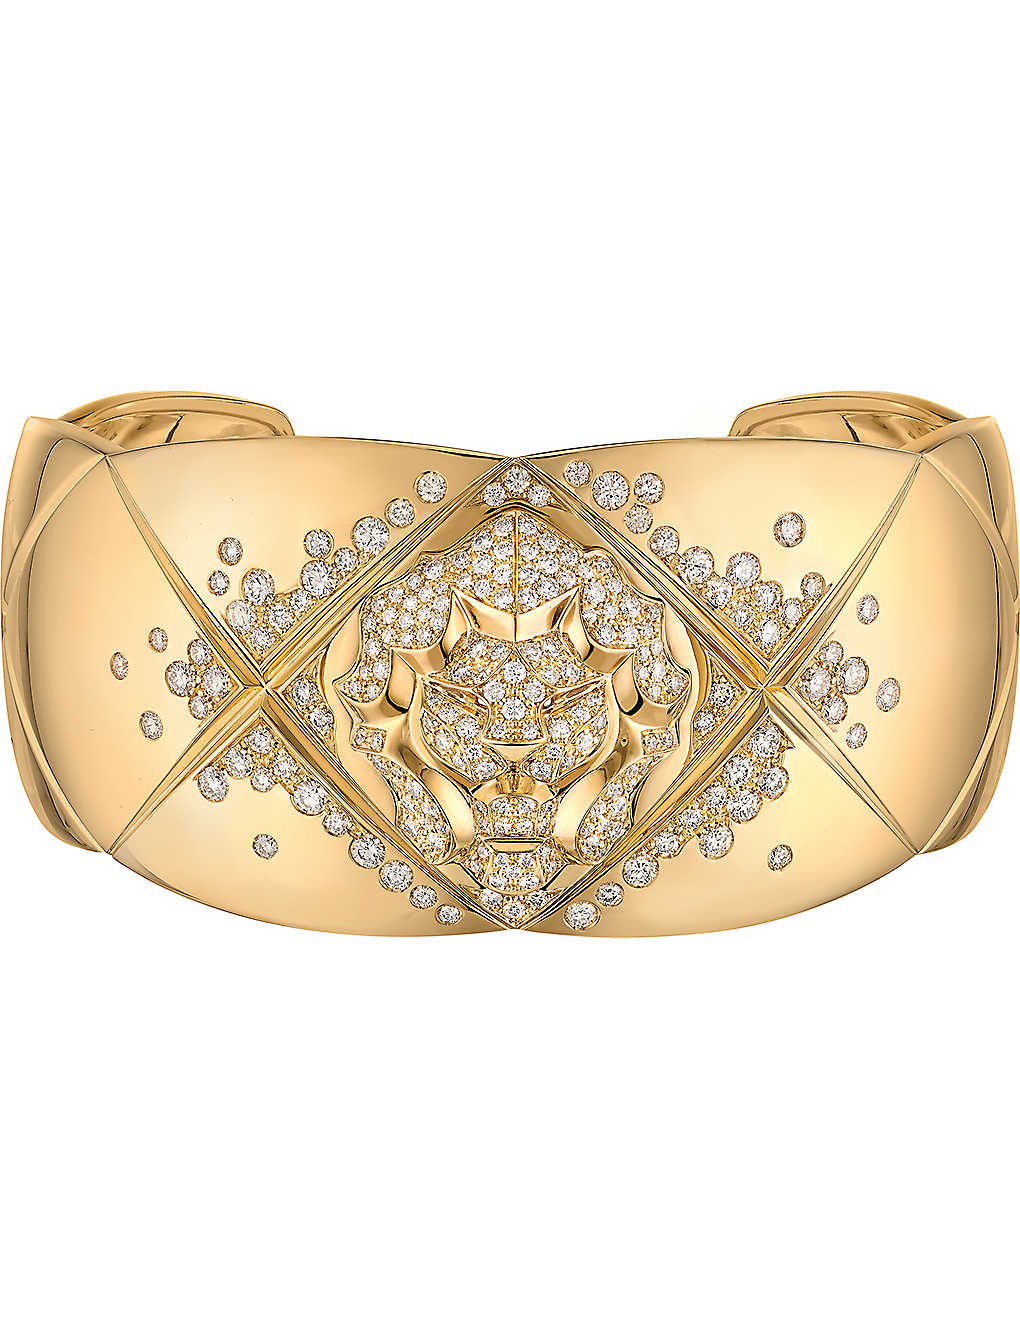 CHANEL - Coco Crush 18k yellow gold and diamond quilted lion cuff ... b94120220adff